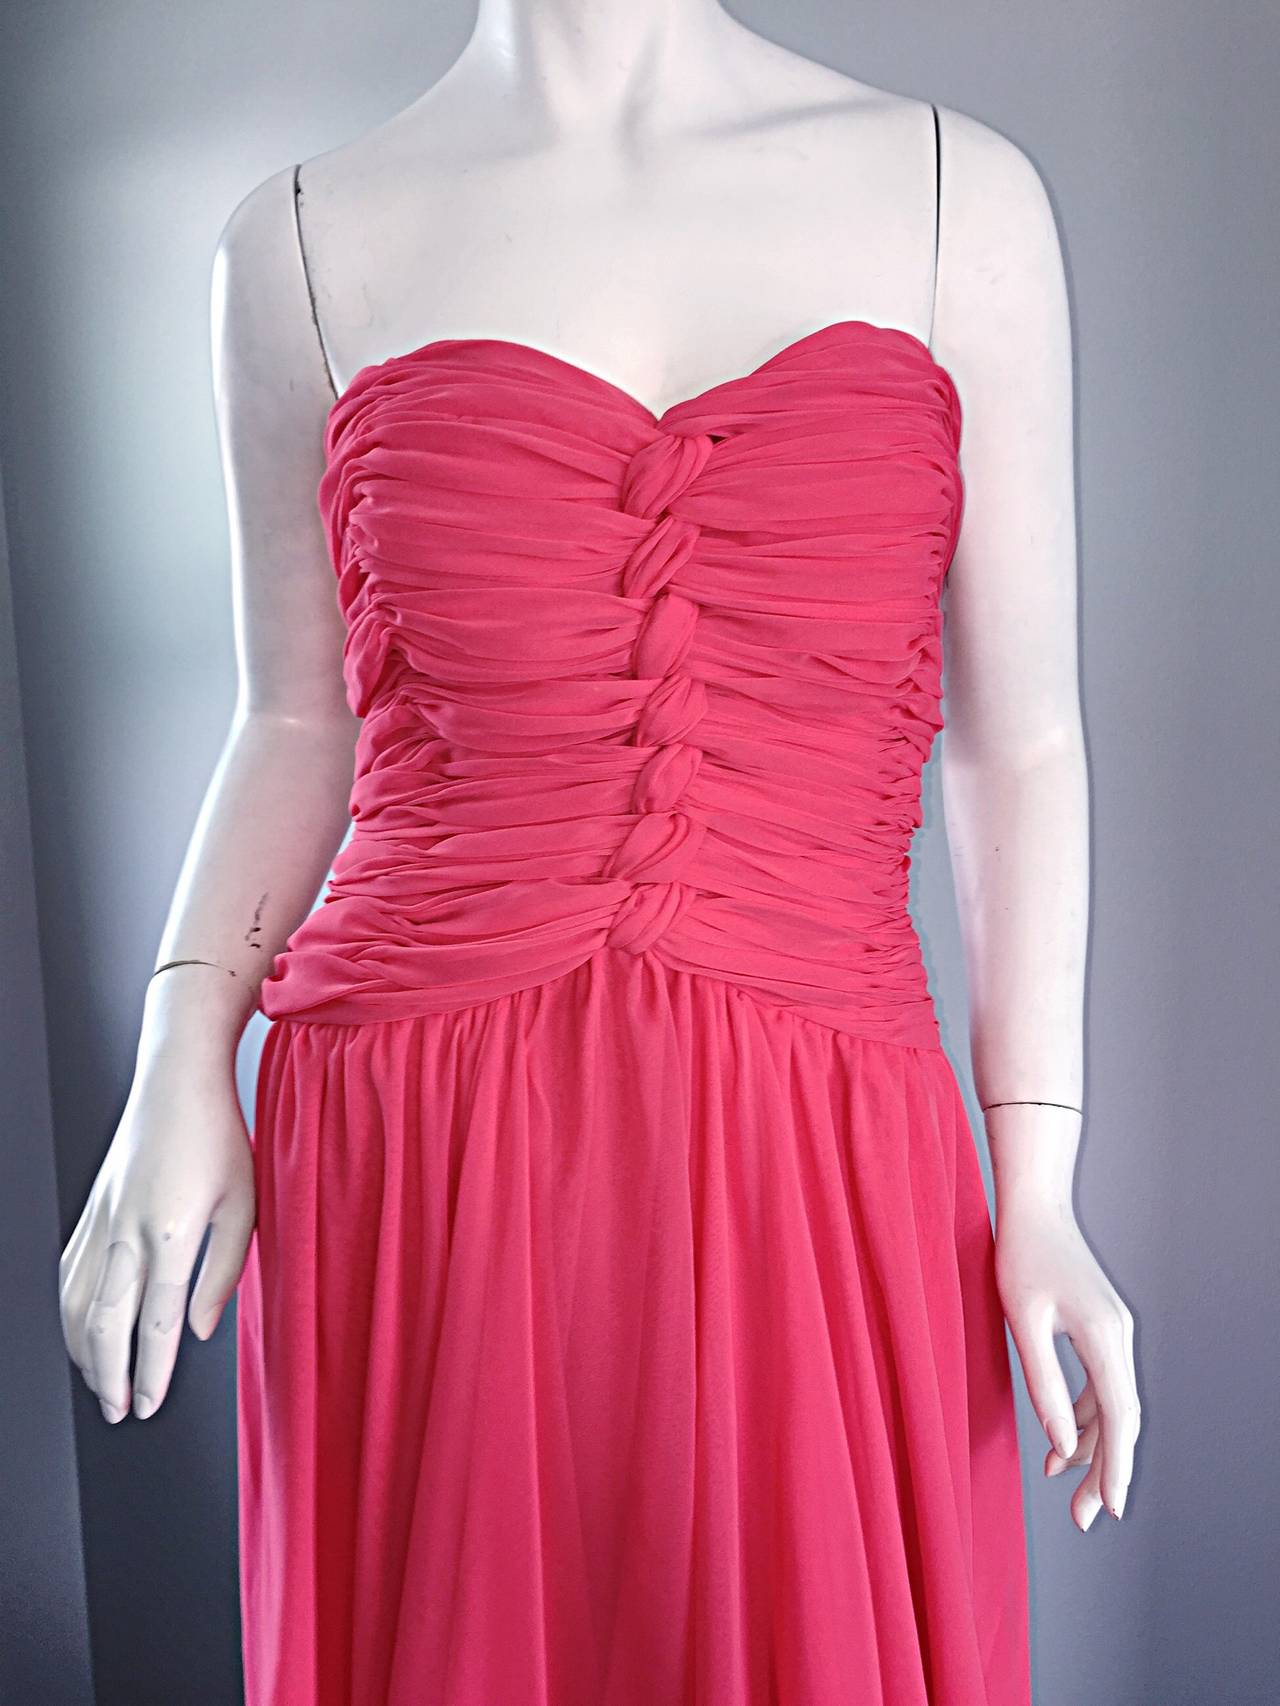 Victor Costa Coral Pink Strapless Flowy Knotted Vintage Cocktail Dress Size 8 10 7